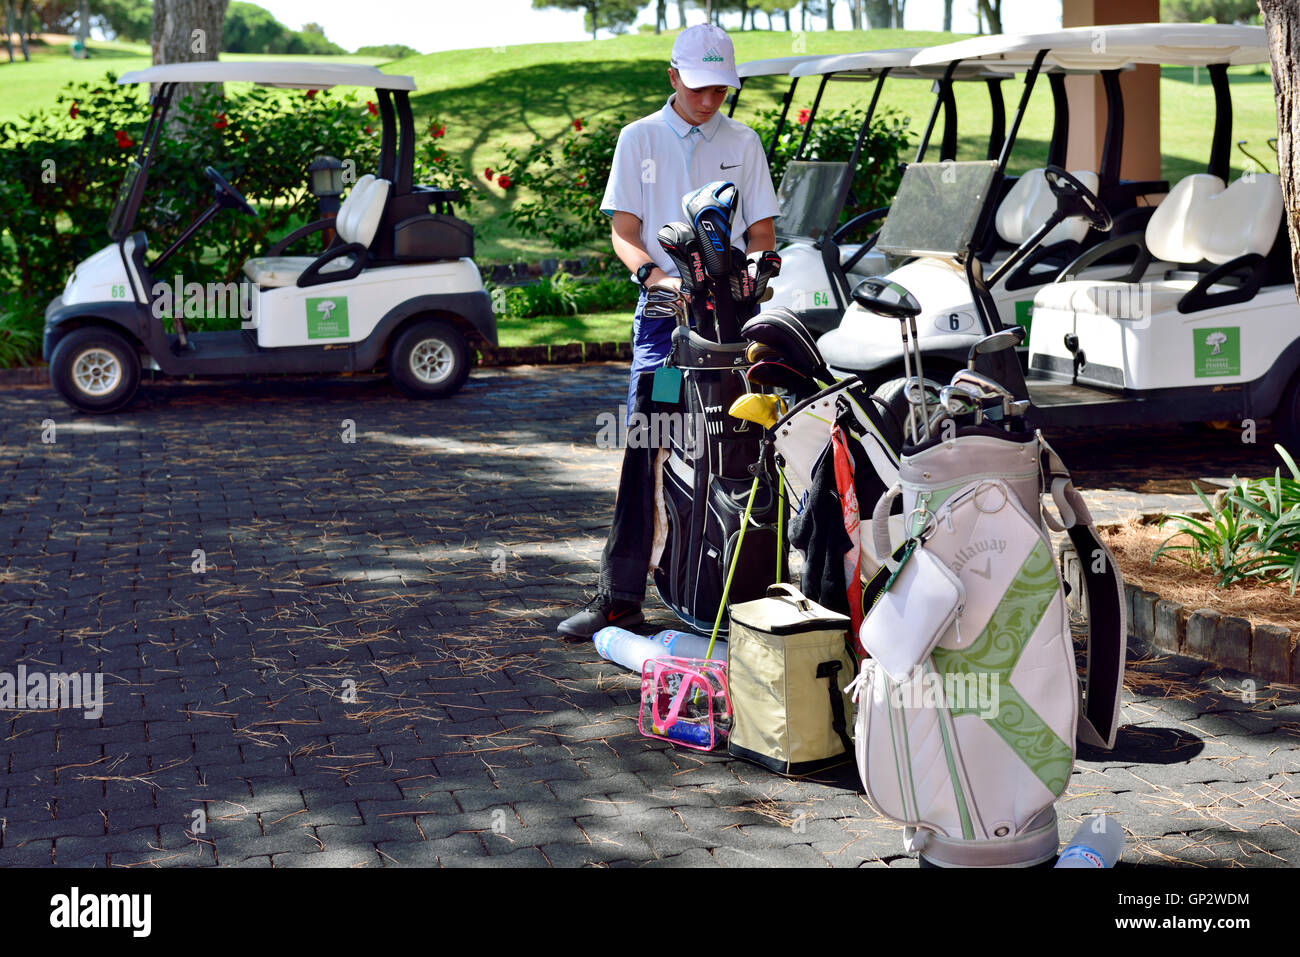 Young man with golf bags and cart at Cascatas Golf Resort & Spa, Vilamoura, Algarve, south Portugal - Stock Image